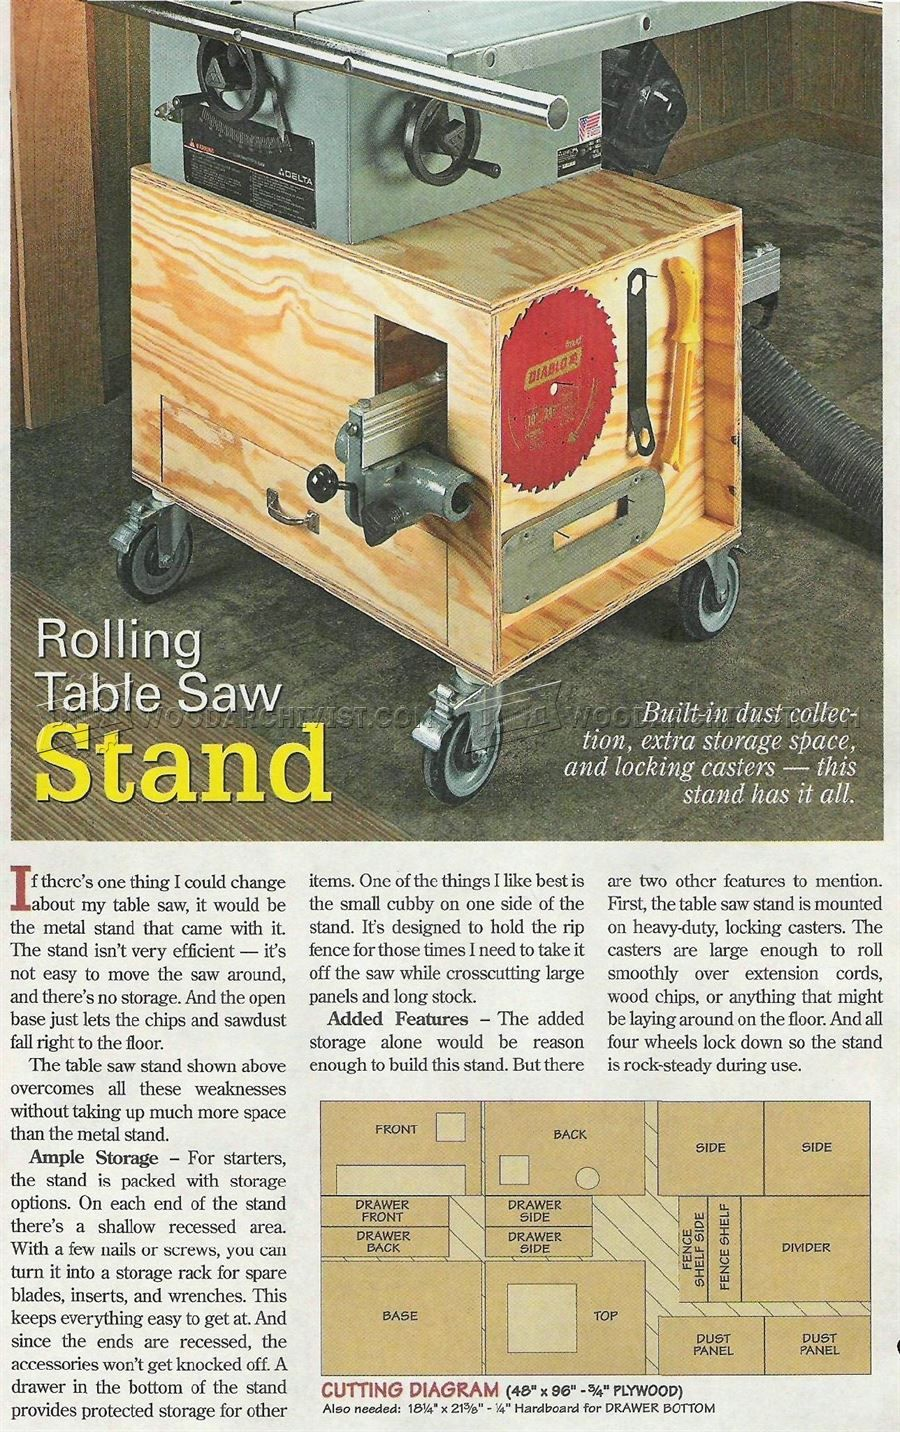 2855 rolling table saw stand plans table saw woodworking table rh pinterest com table saw stand plans pdf DIY Table Saw Stand Plans